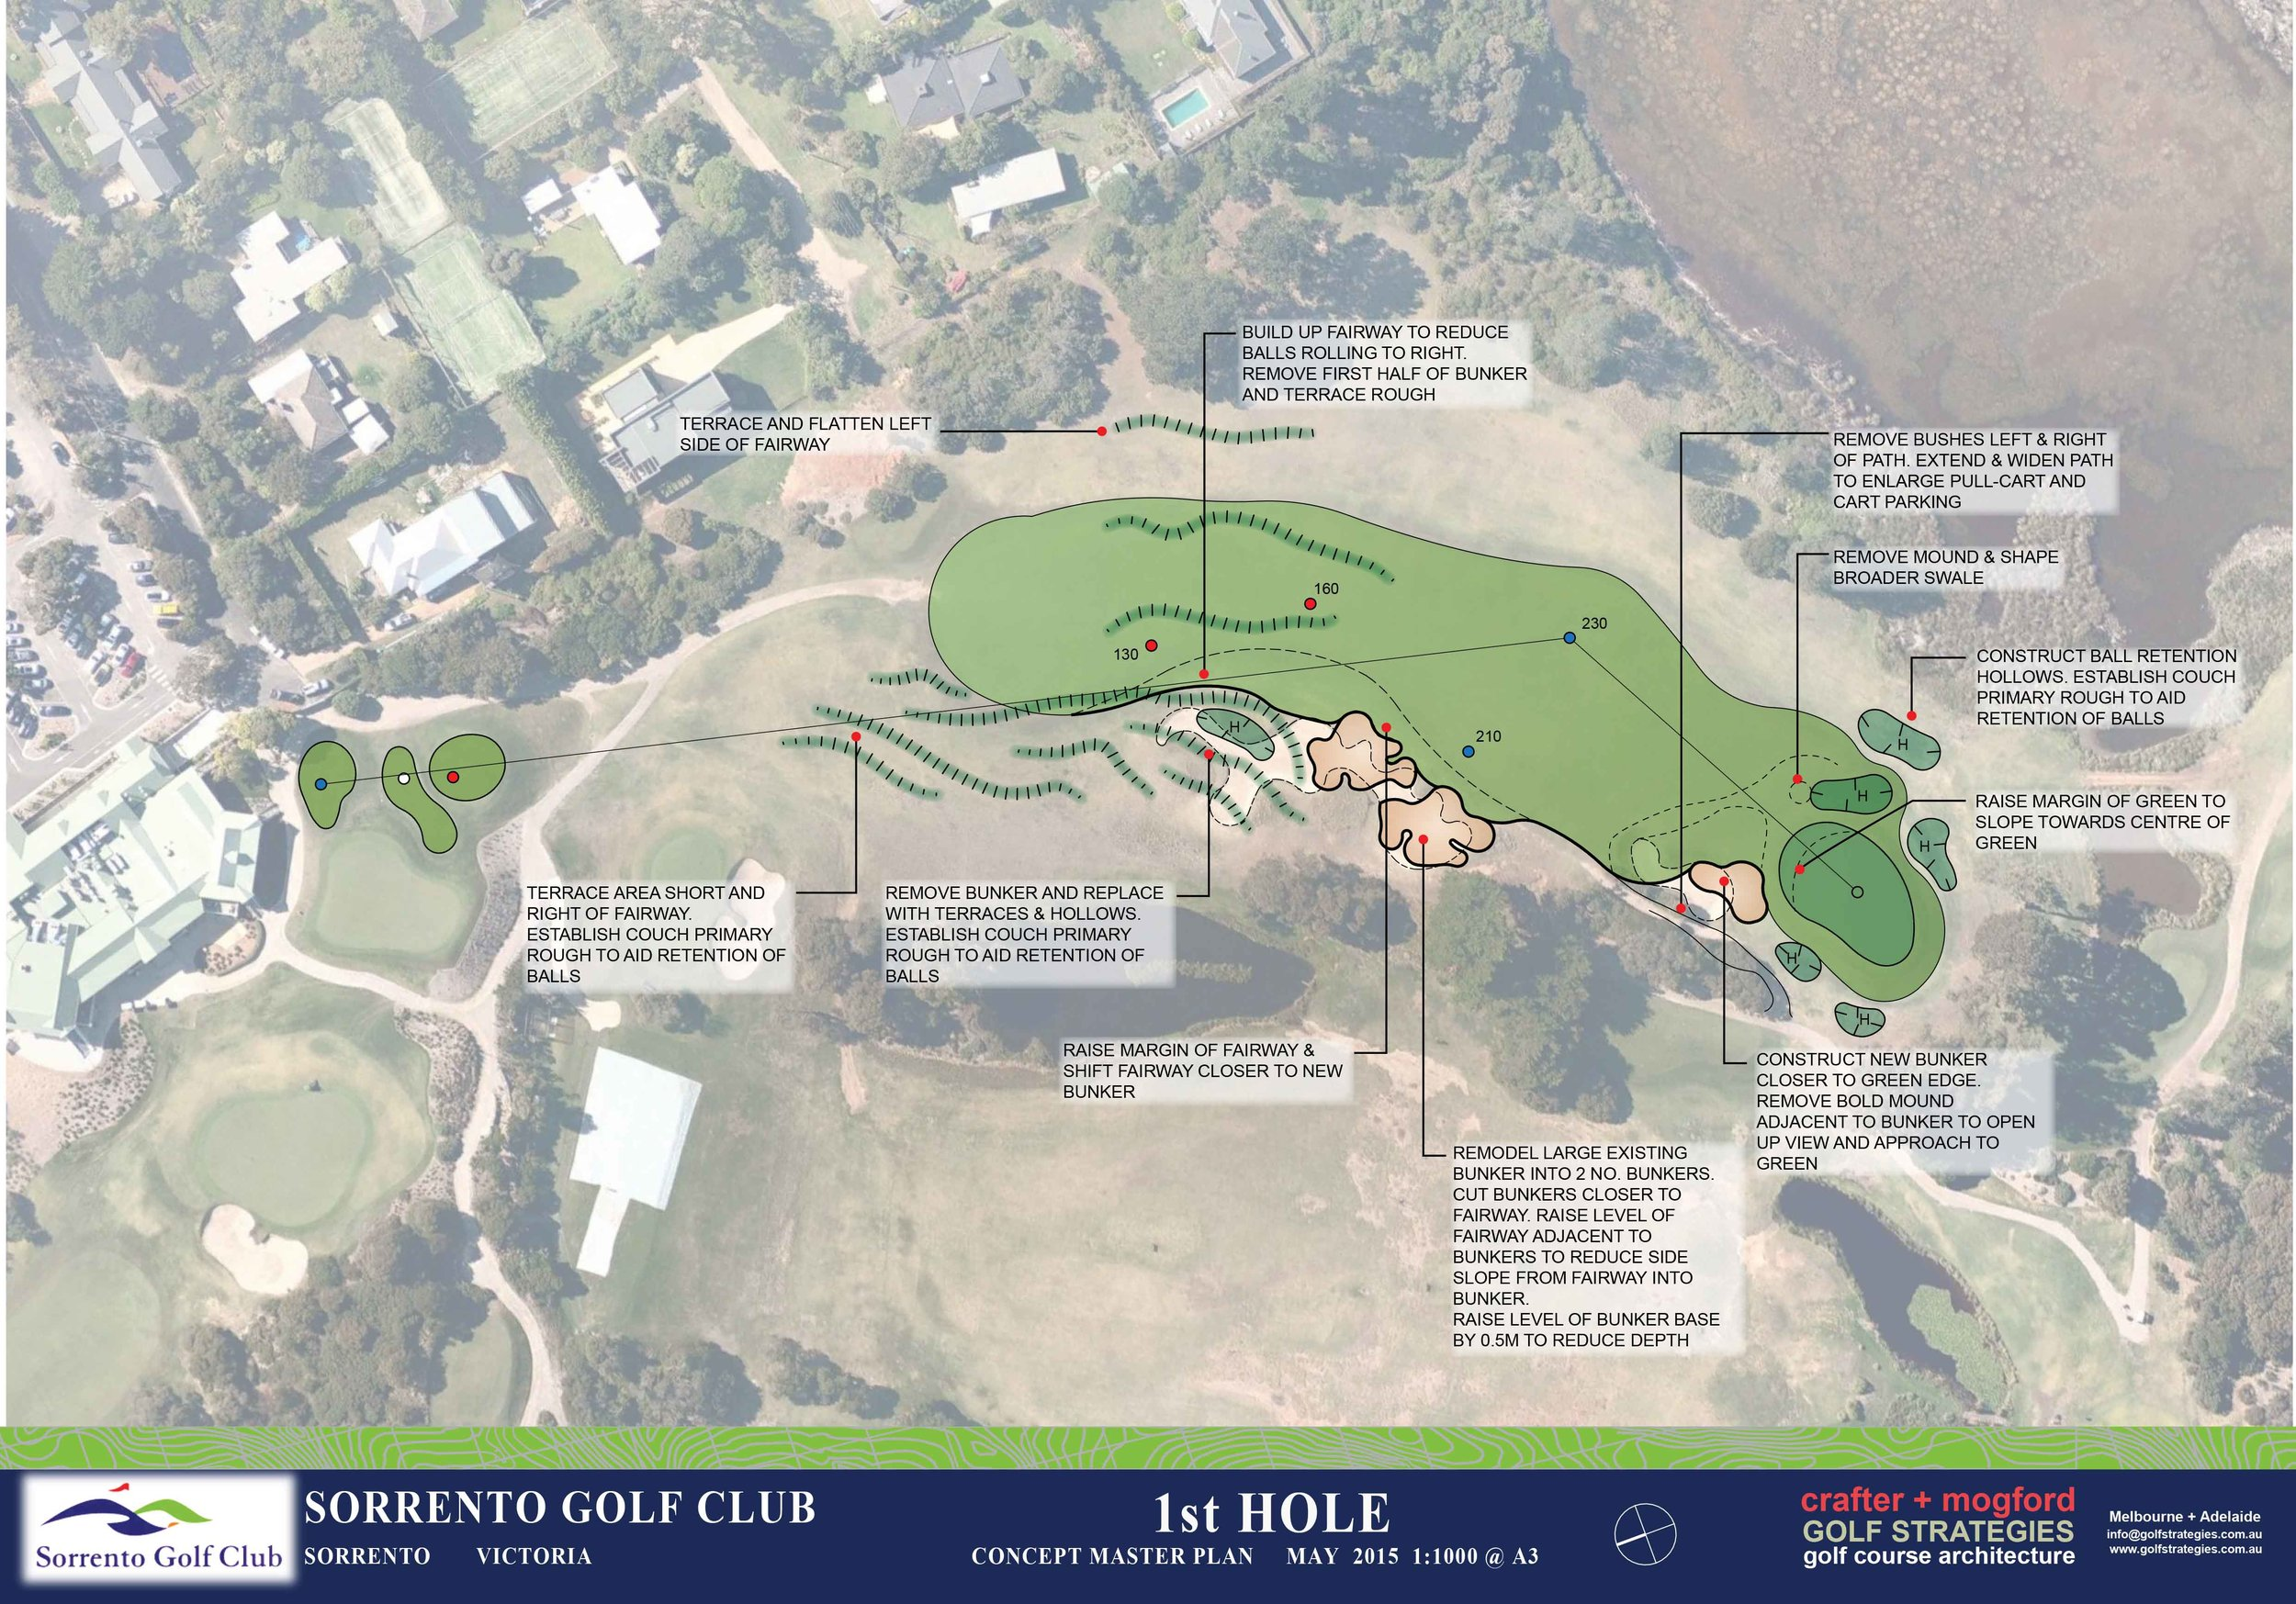 Pages from C+M Sorrento Master Plan June 2015 - 1st Hole.jpg